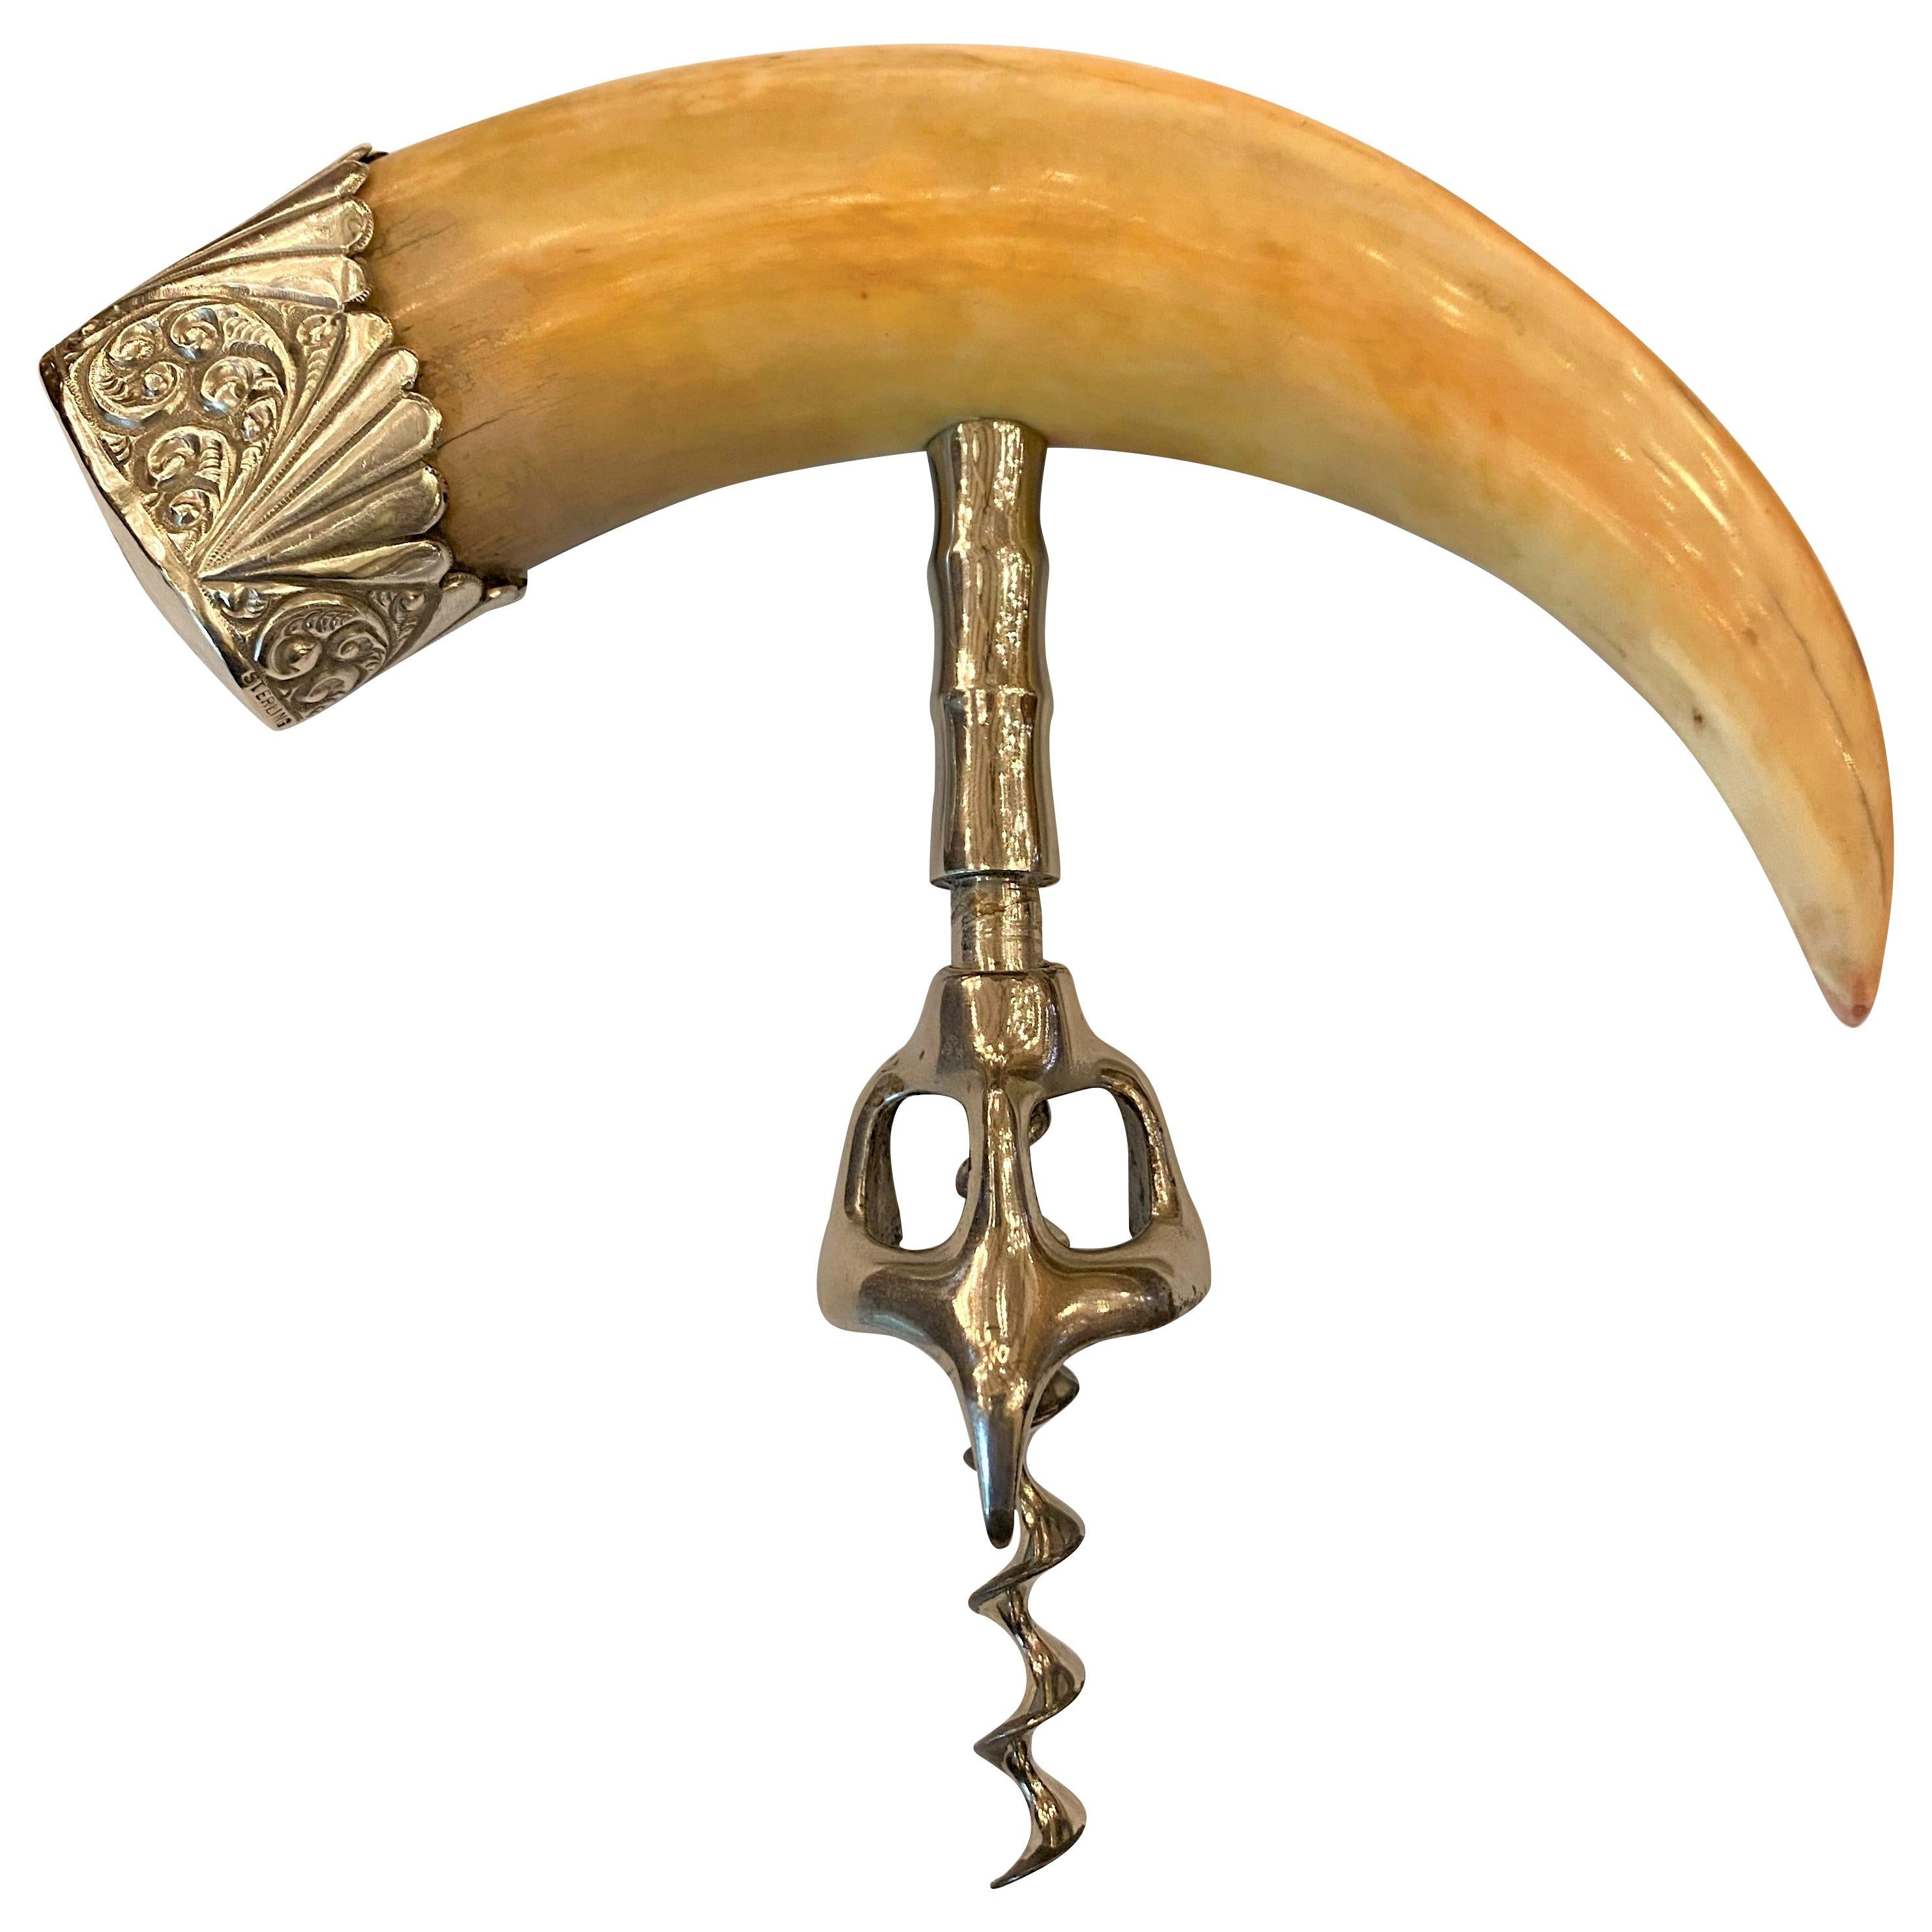 Antique Boar's Tusk Corkscrew with Sterling Silver Mount, circa 1900-1910